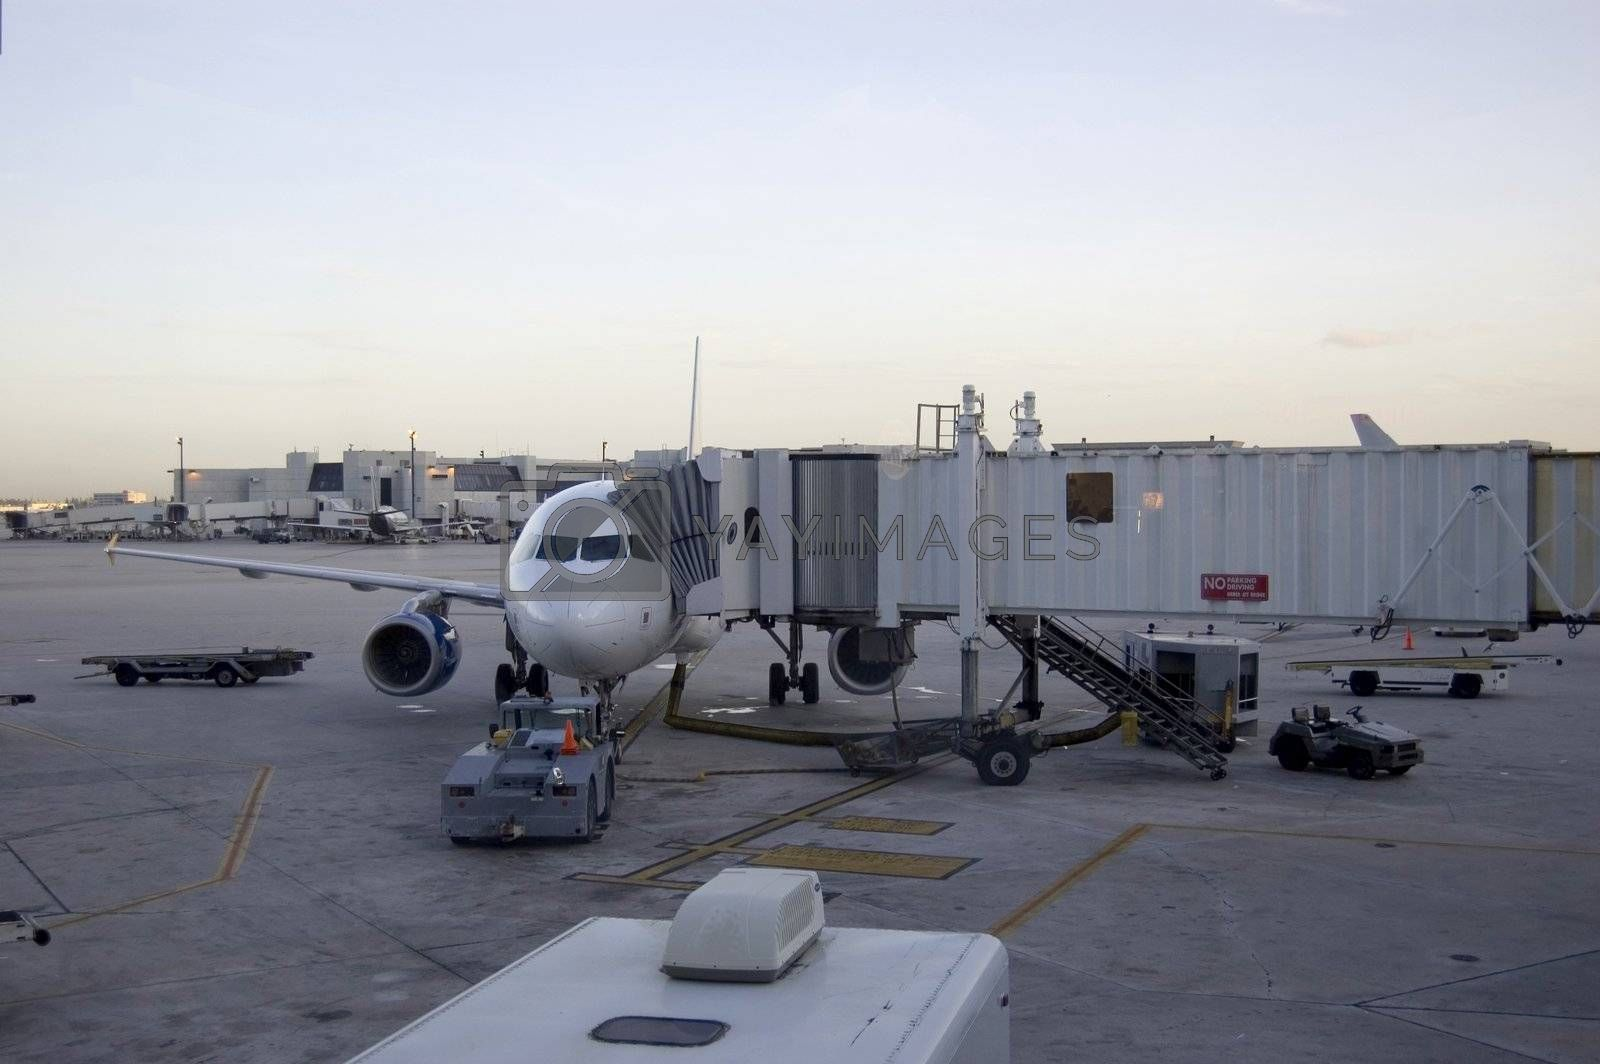 Airport Scene Showing airplane and different tractors and jet bridge